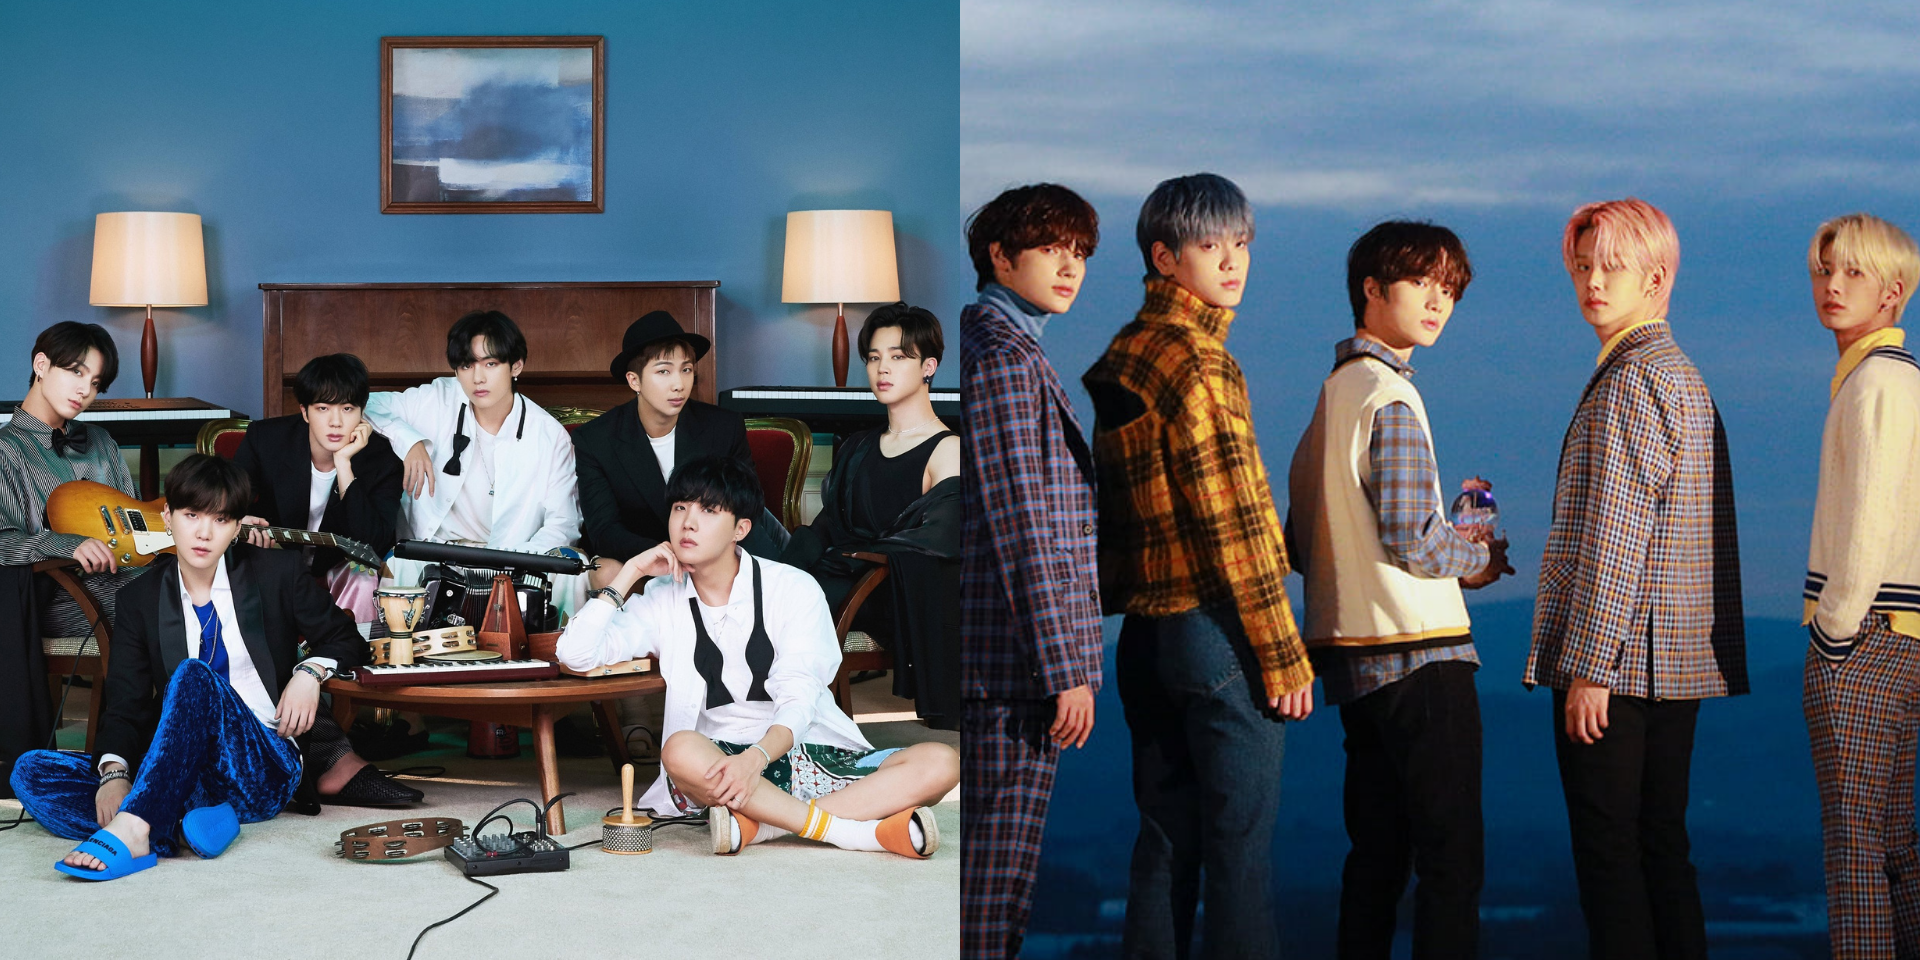 New mobile game 'Rhythm Hive' featuring BTS and TOMORROW X TOGETHER set to be released in 2021